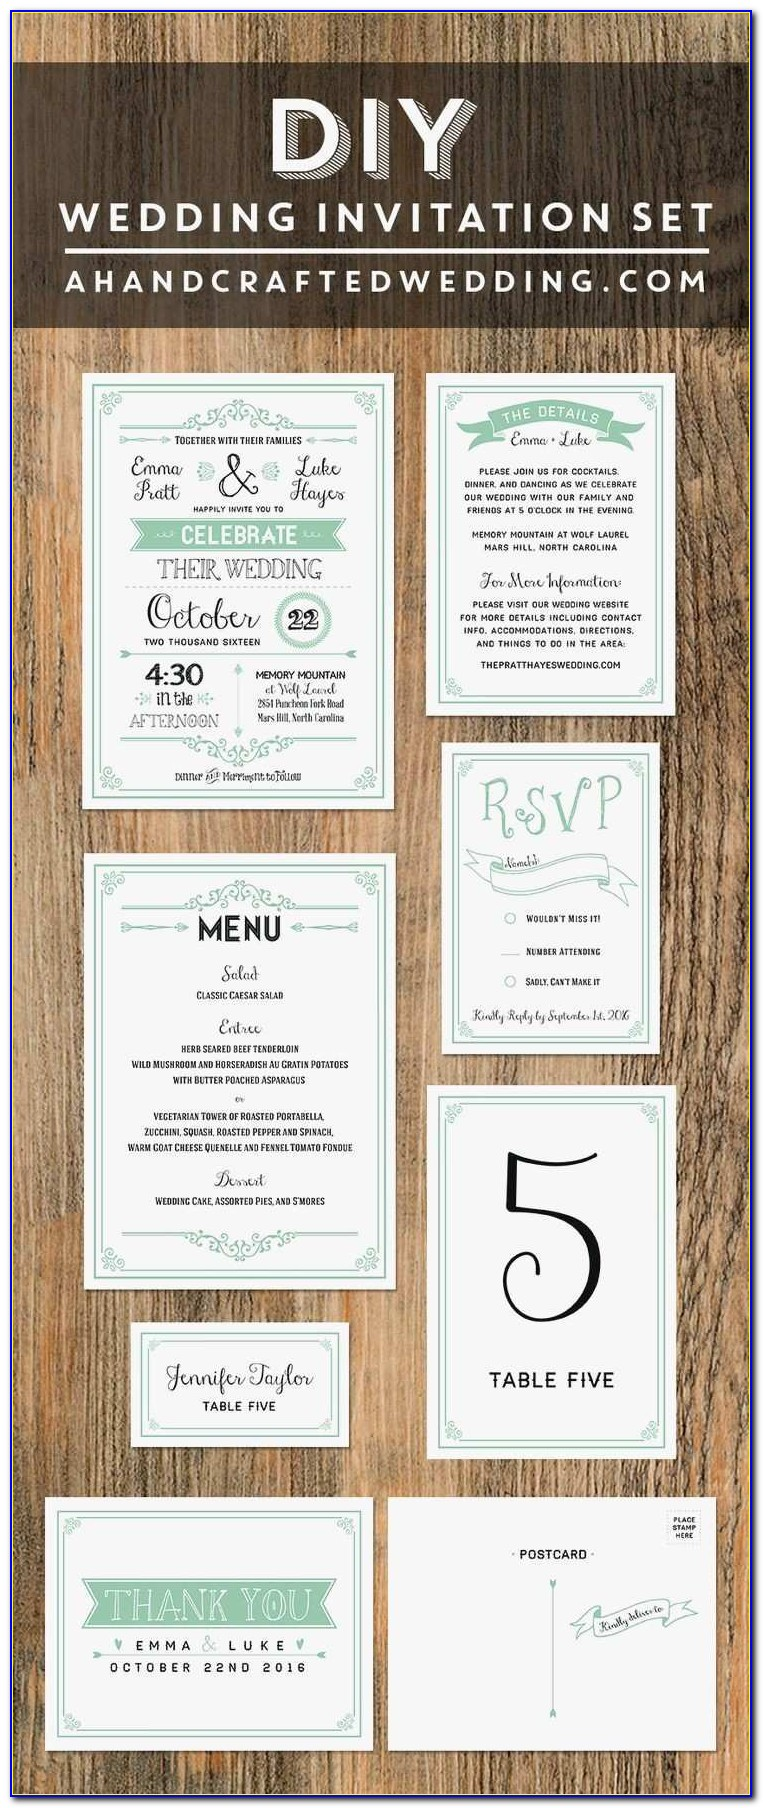 Wedding Invitation Templates Free Download Publisher Beautiful 11 Best Free Wedding Invitation Templates & Printables Images On